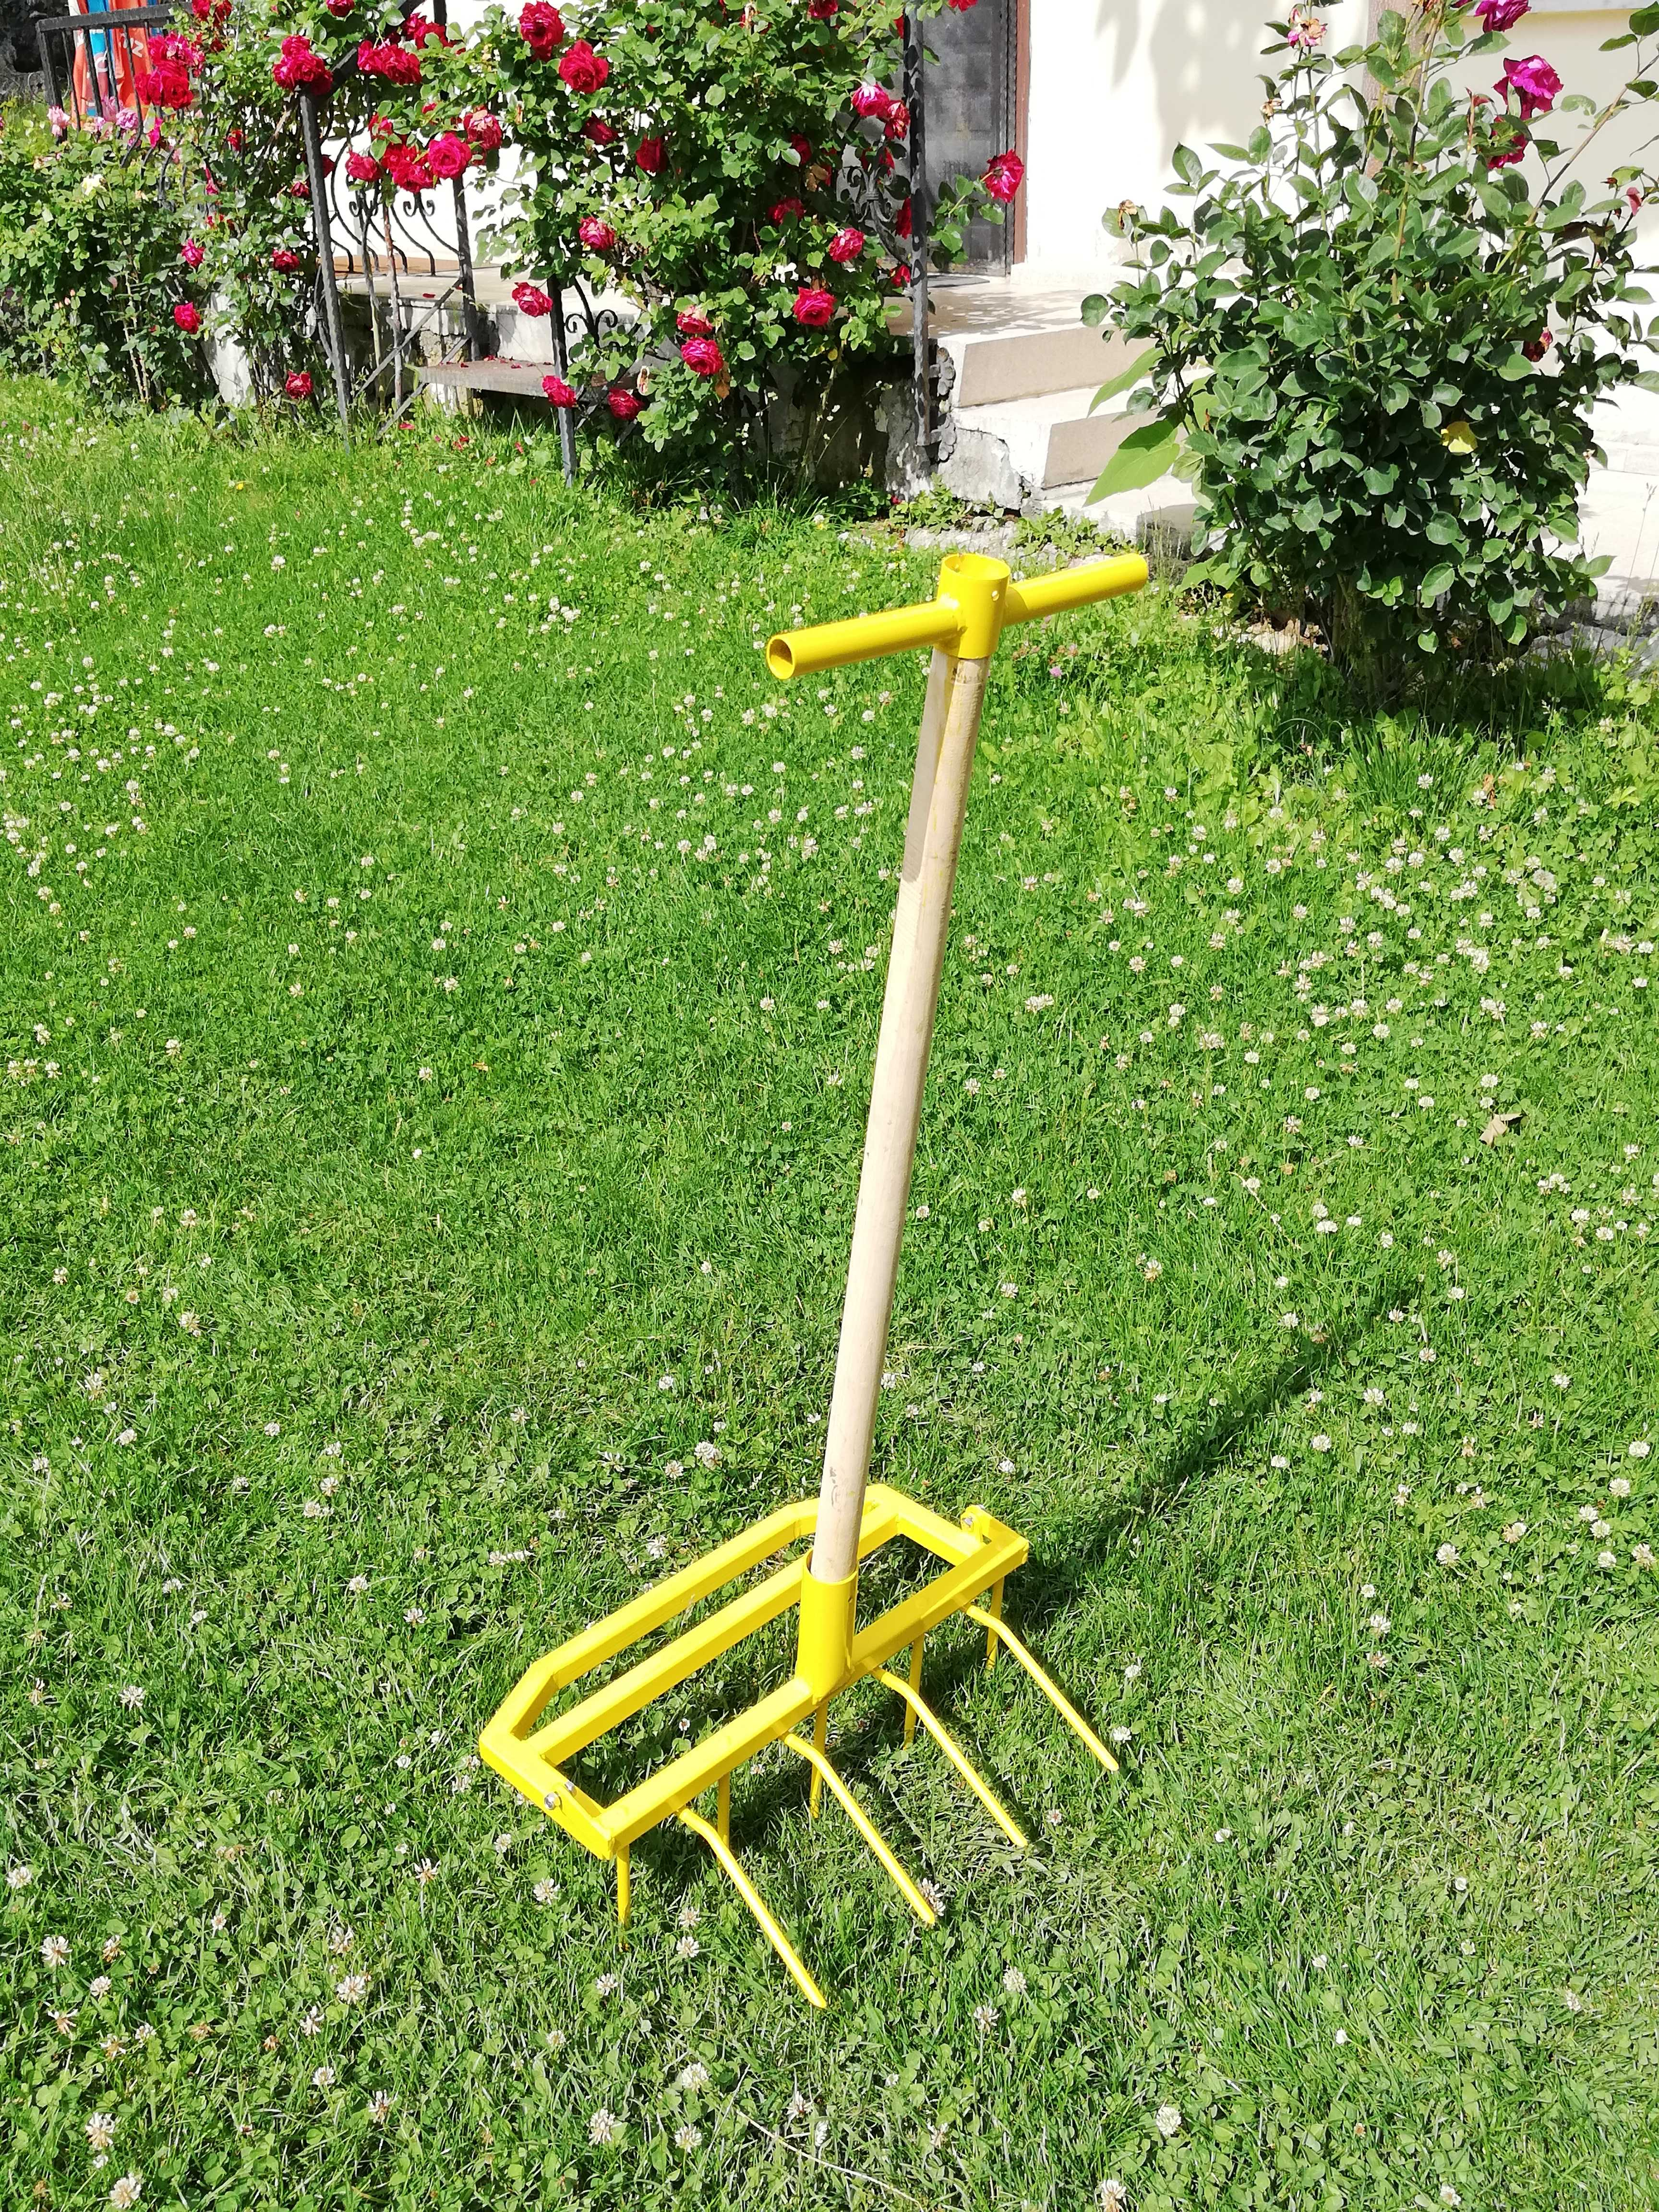 GARDEN DIGGING AND PURGE STAINLESS STEEL EASY TO USE HIGH PERFORMANCE DURABLE GARDEN TOOL FOR VEGETABLE AND FRUIT GROWERS